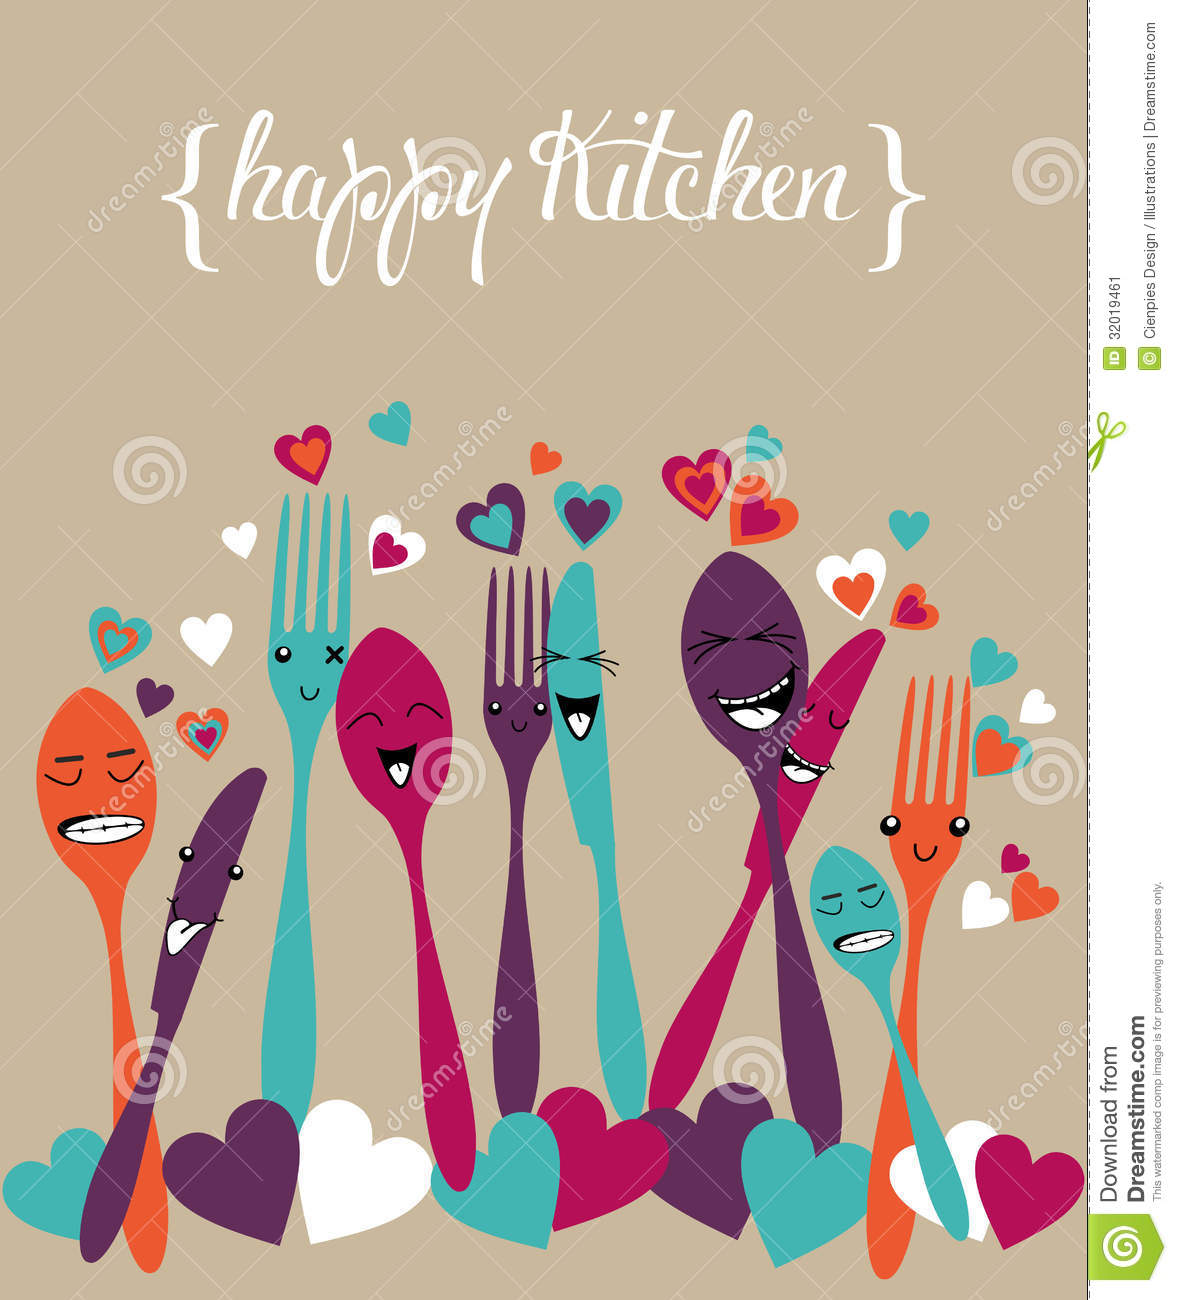 Stock Image Happy Kitchen Silverware Cartoon Set Colorful Cute Cutlery Background Vector File Layered Easy Manipulation Custom Image32019461 on file symbol thumbs up color